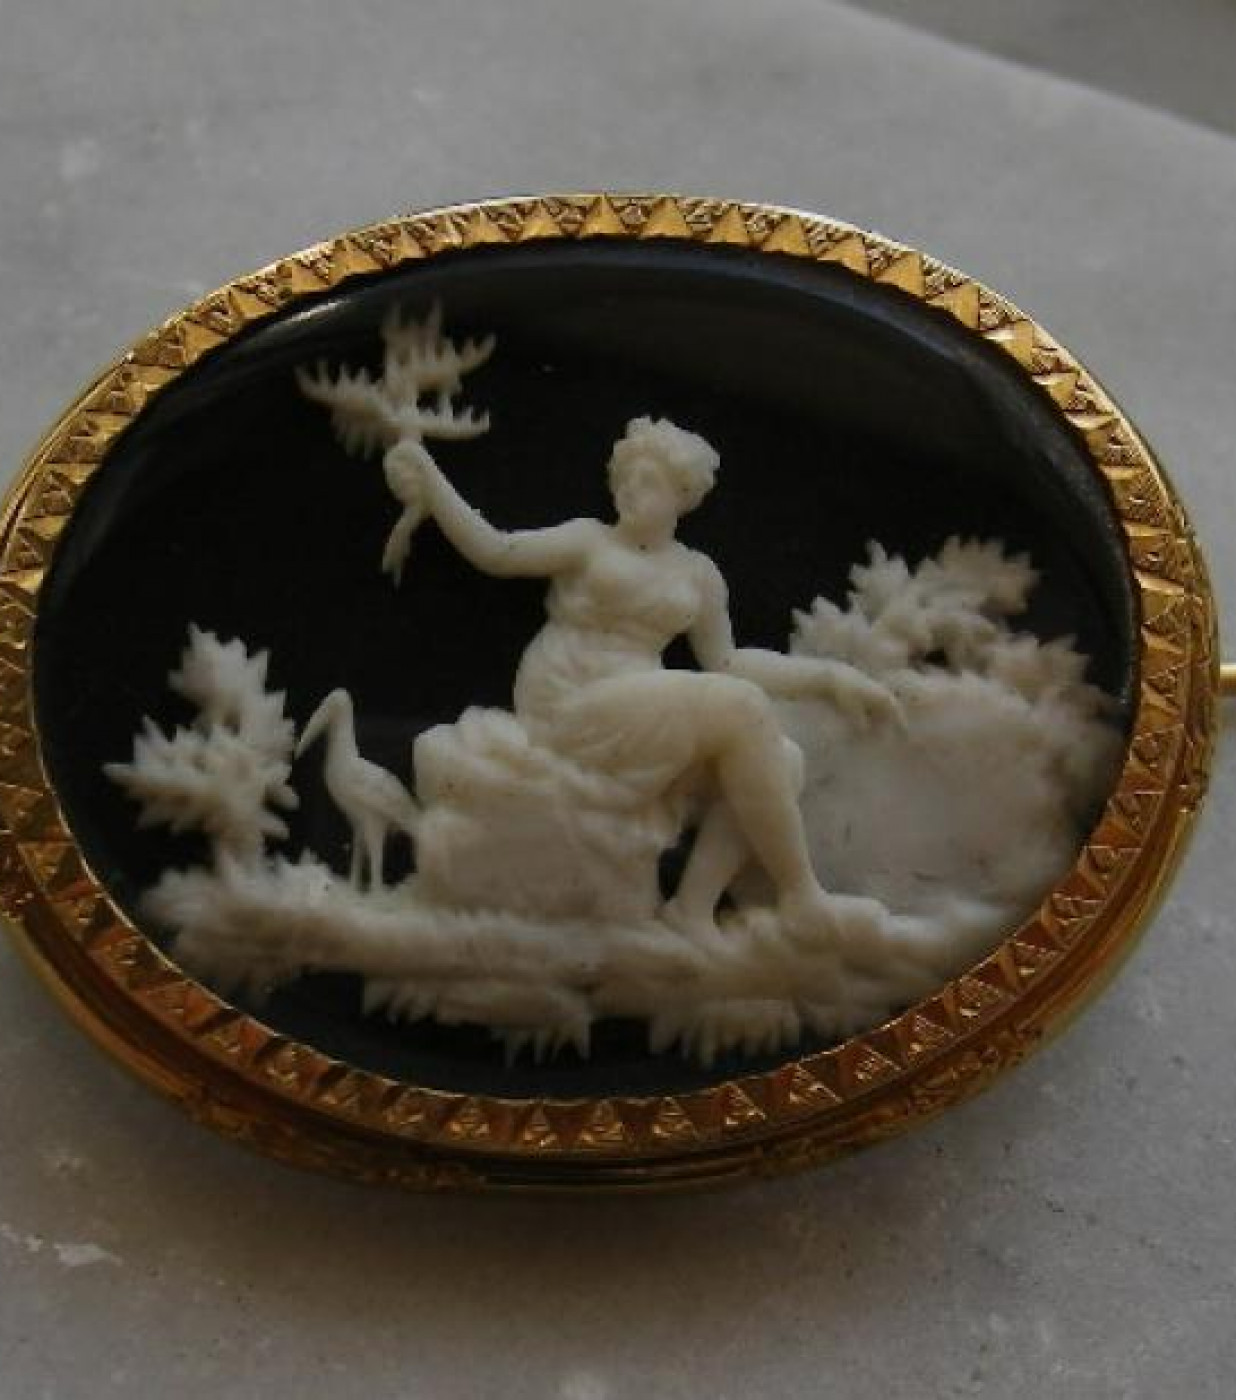 Micro Ivory of Goddess Diana